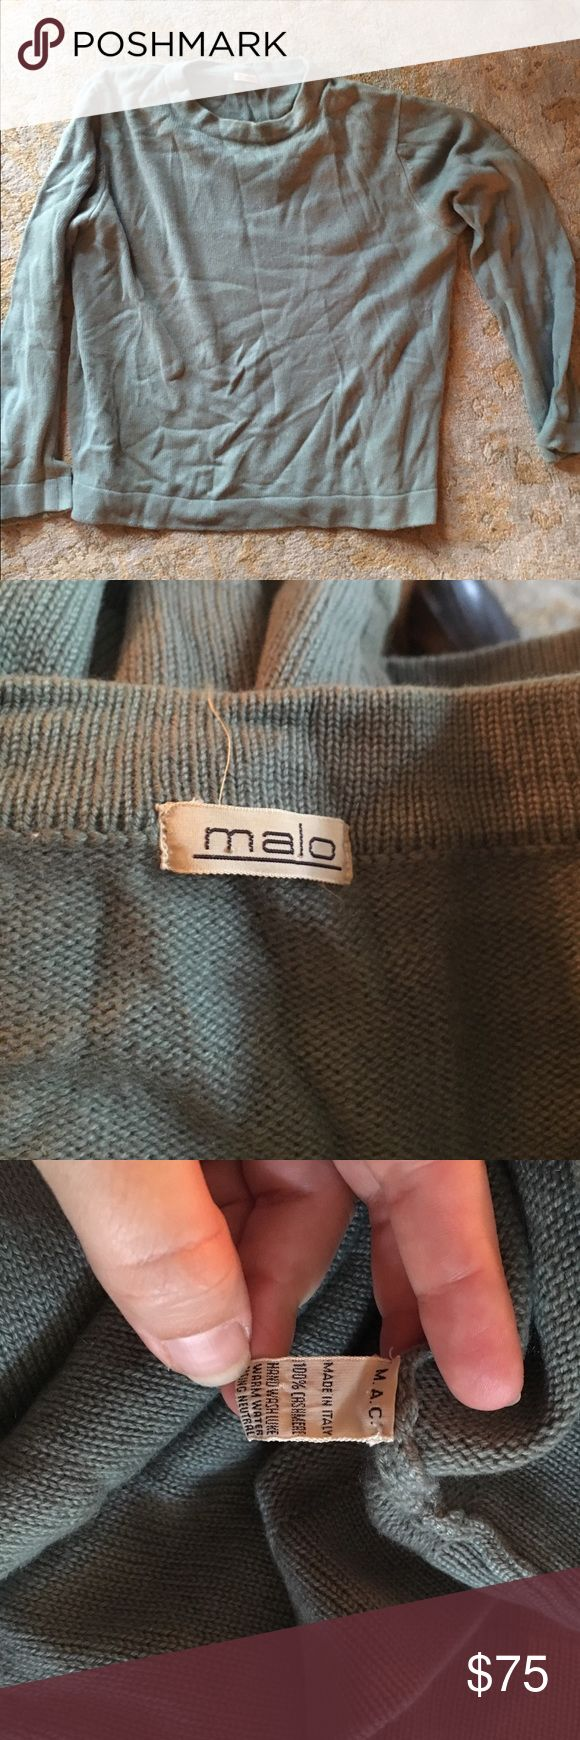 Mens Cashmere sweater Malo Italian Cashmere sweater, small snag on inside of bottom hem. It's a green grey neutral color Malo Sweaters Crewneck